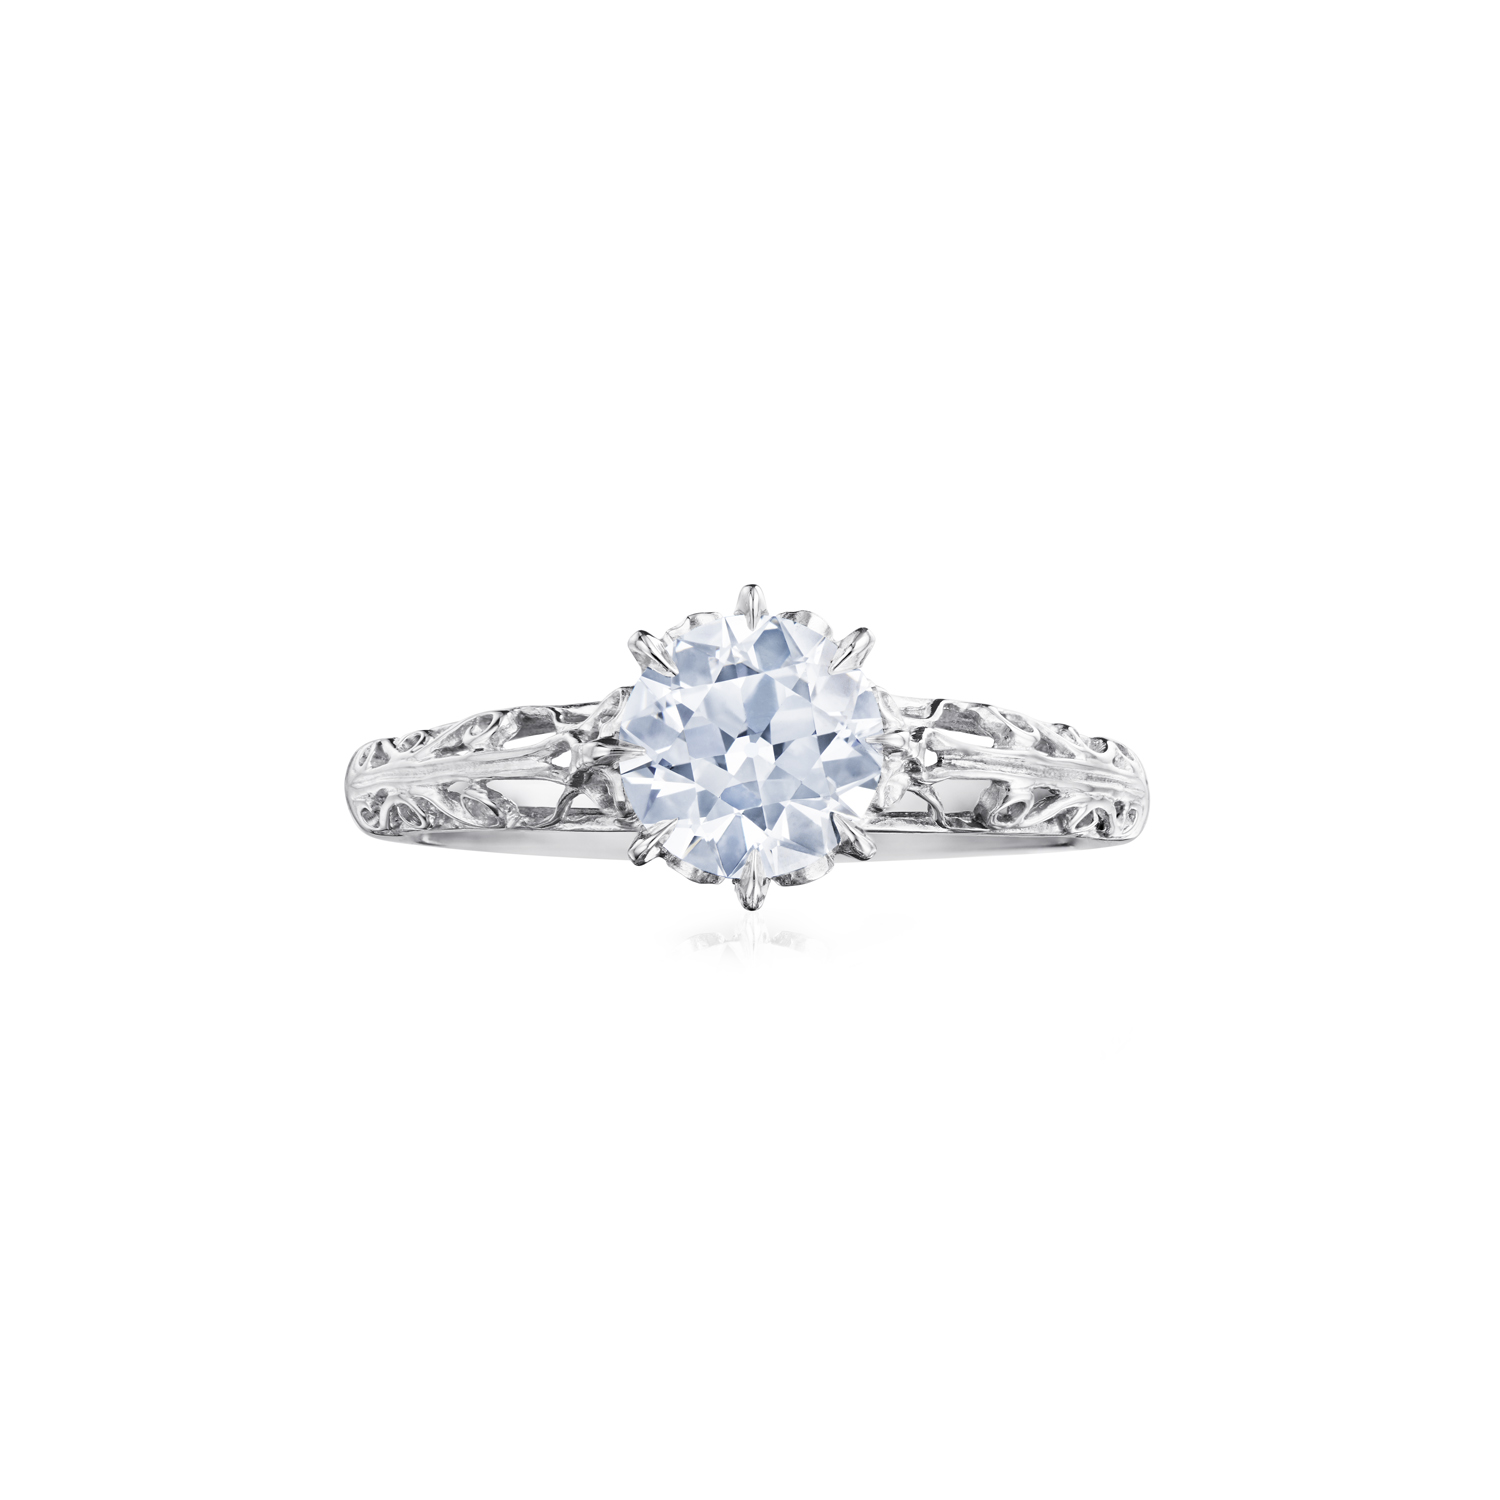 Fred Leighton Round Diamond Platinum Filigree Ring Signed Fred Leighton Style F-1011FL-0-DIA-PLAT